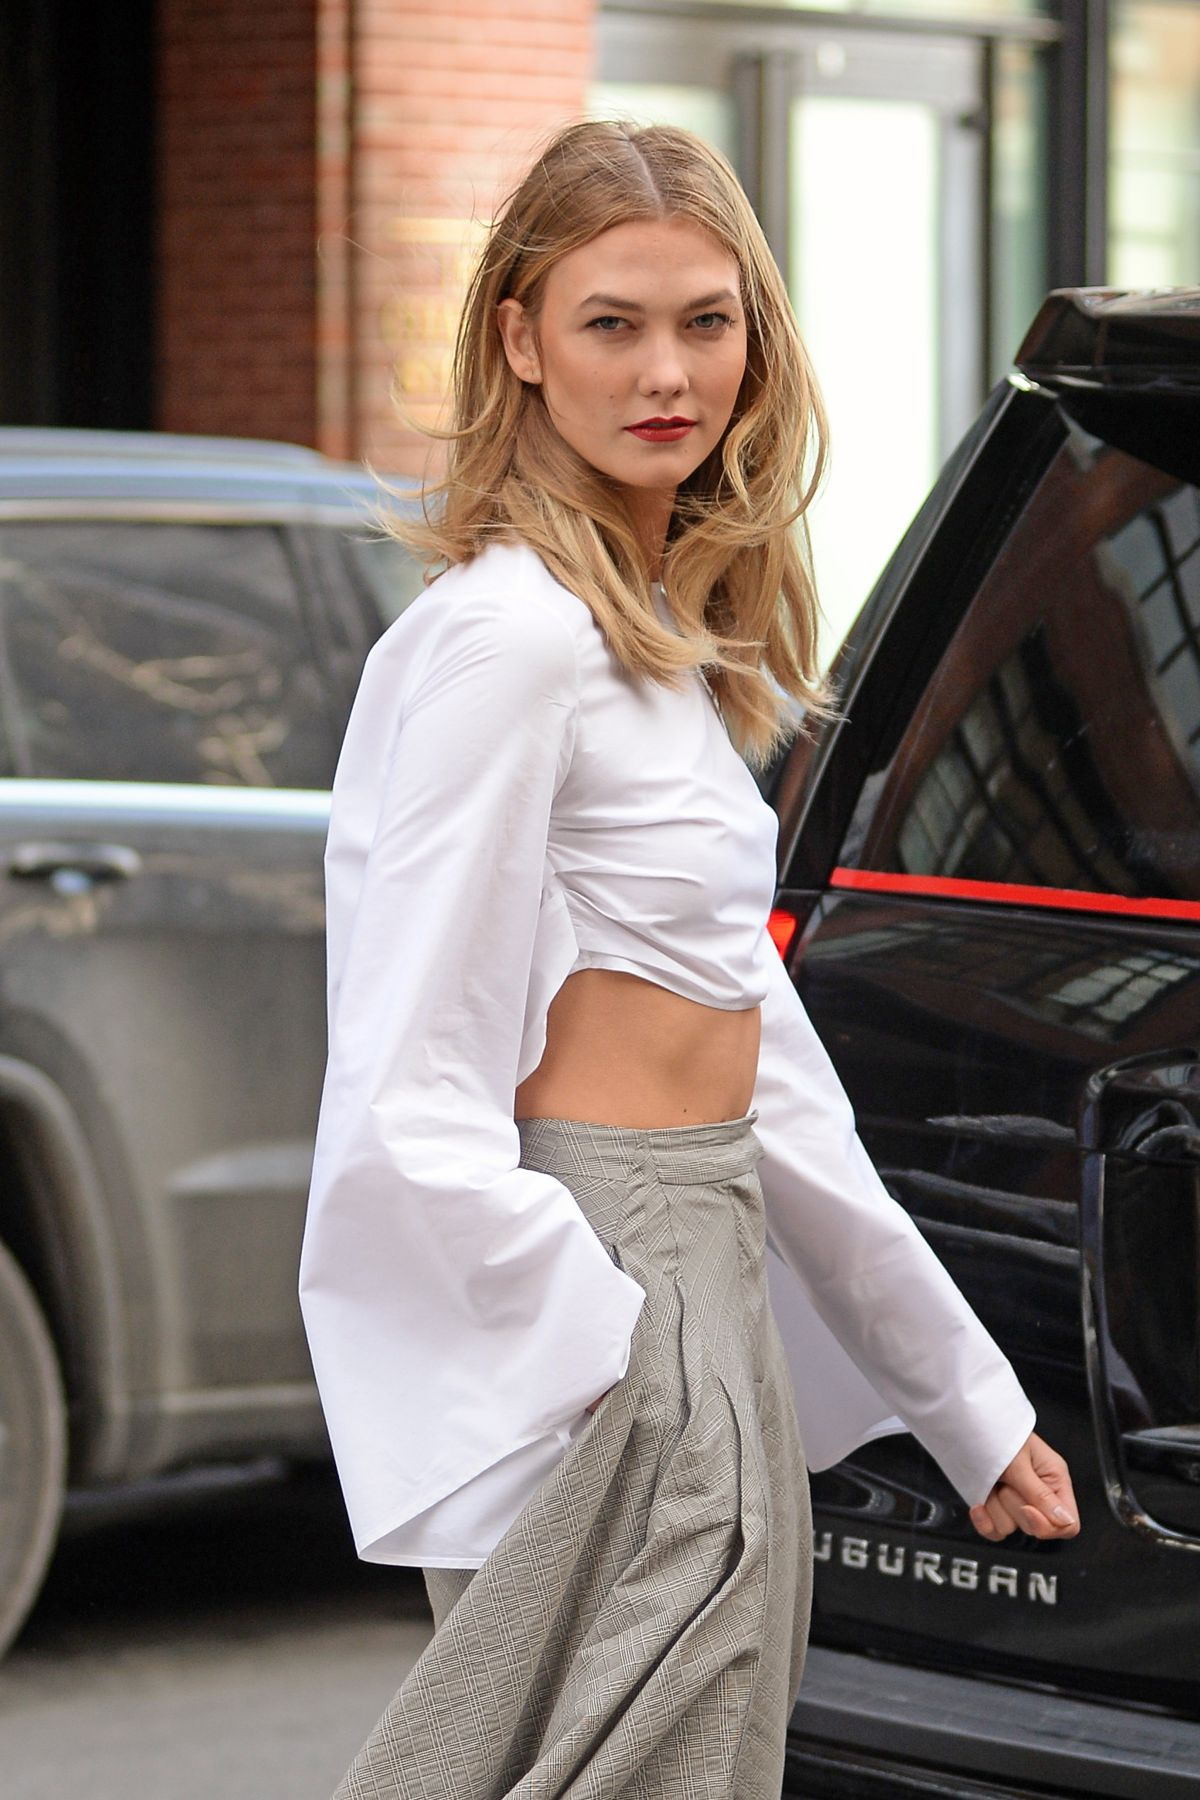 KARLIE KLOSS on the Set of a Photoshoot in West Village 02/11/2016